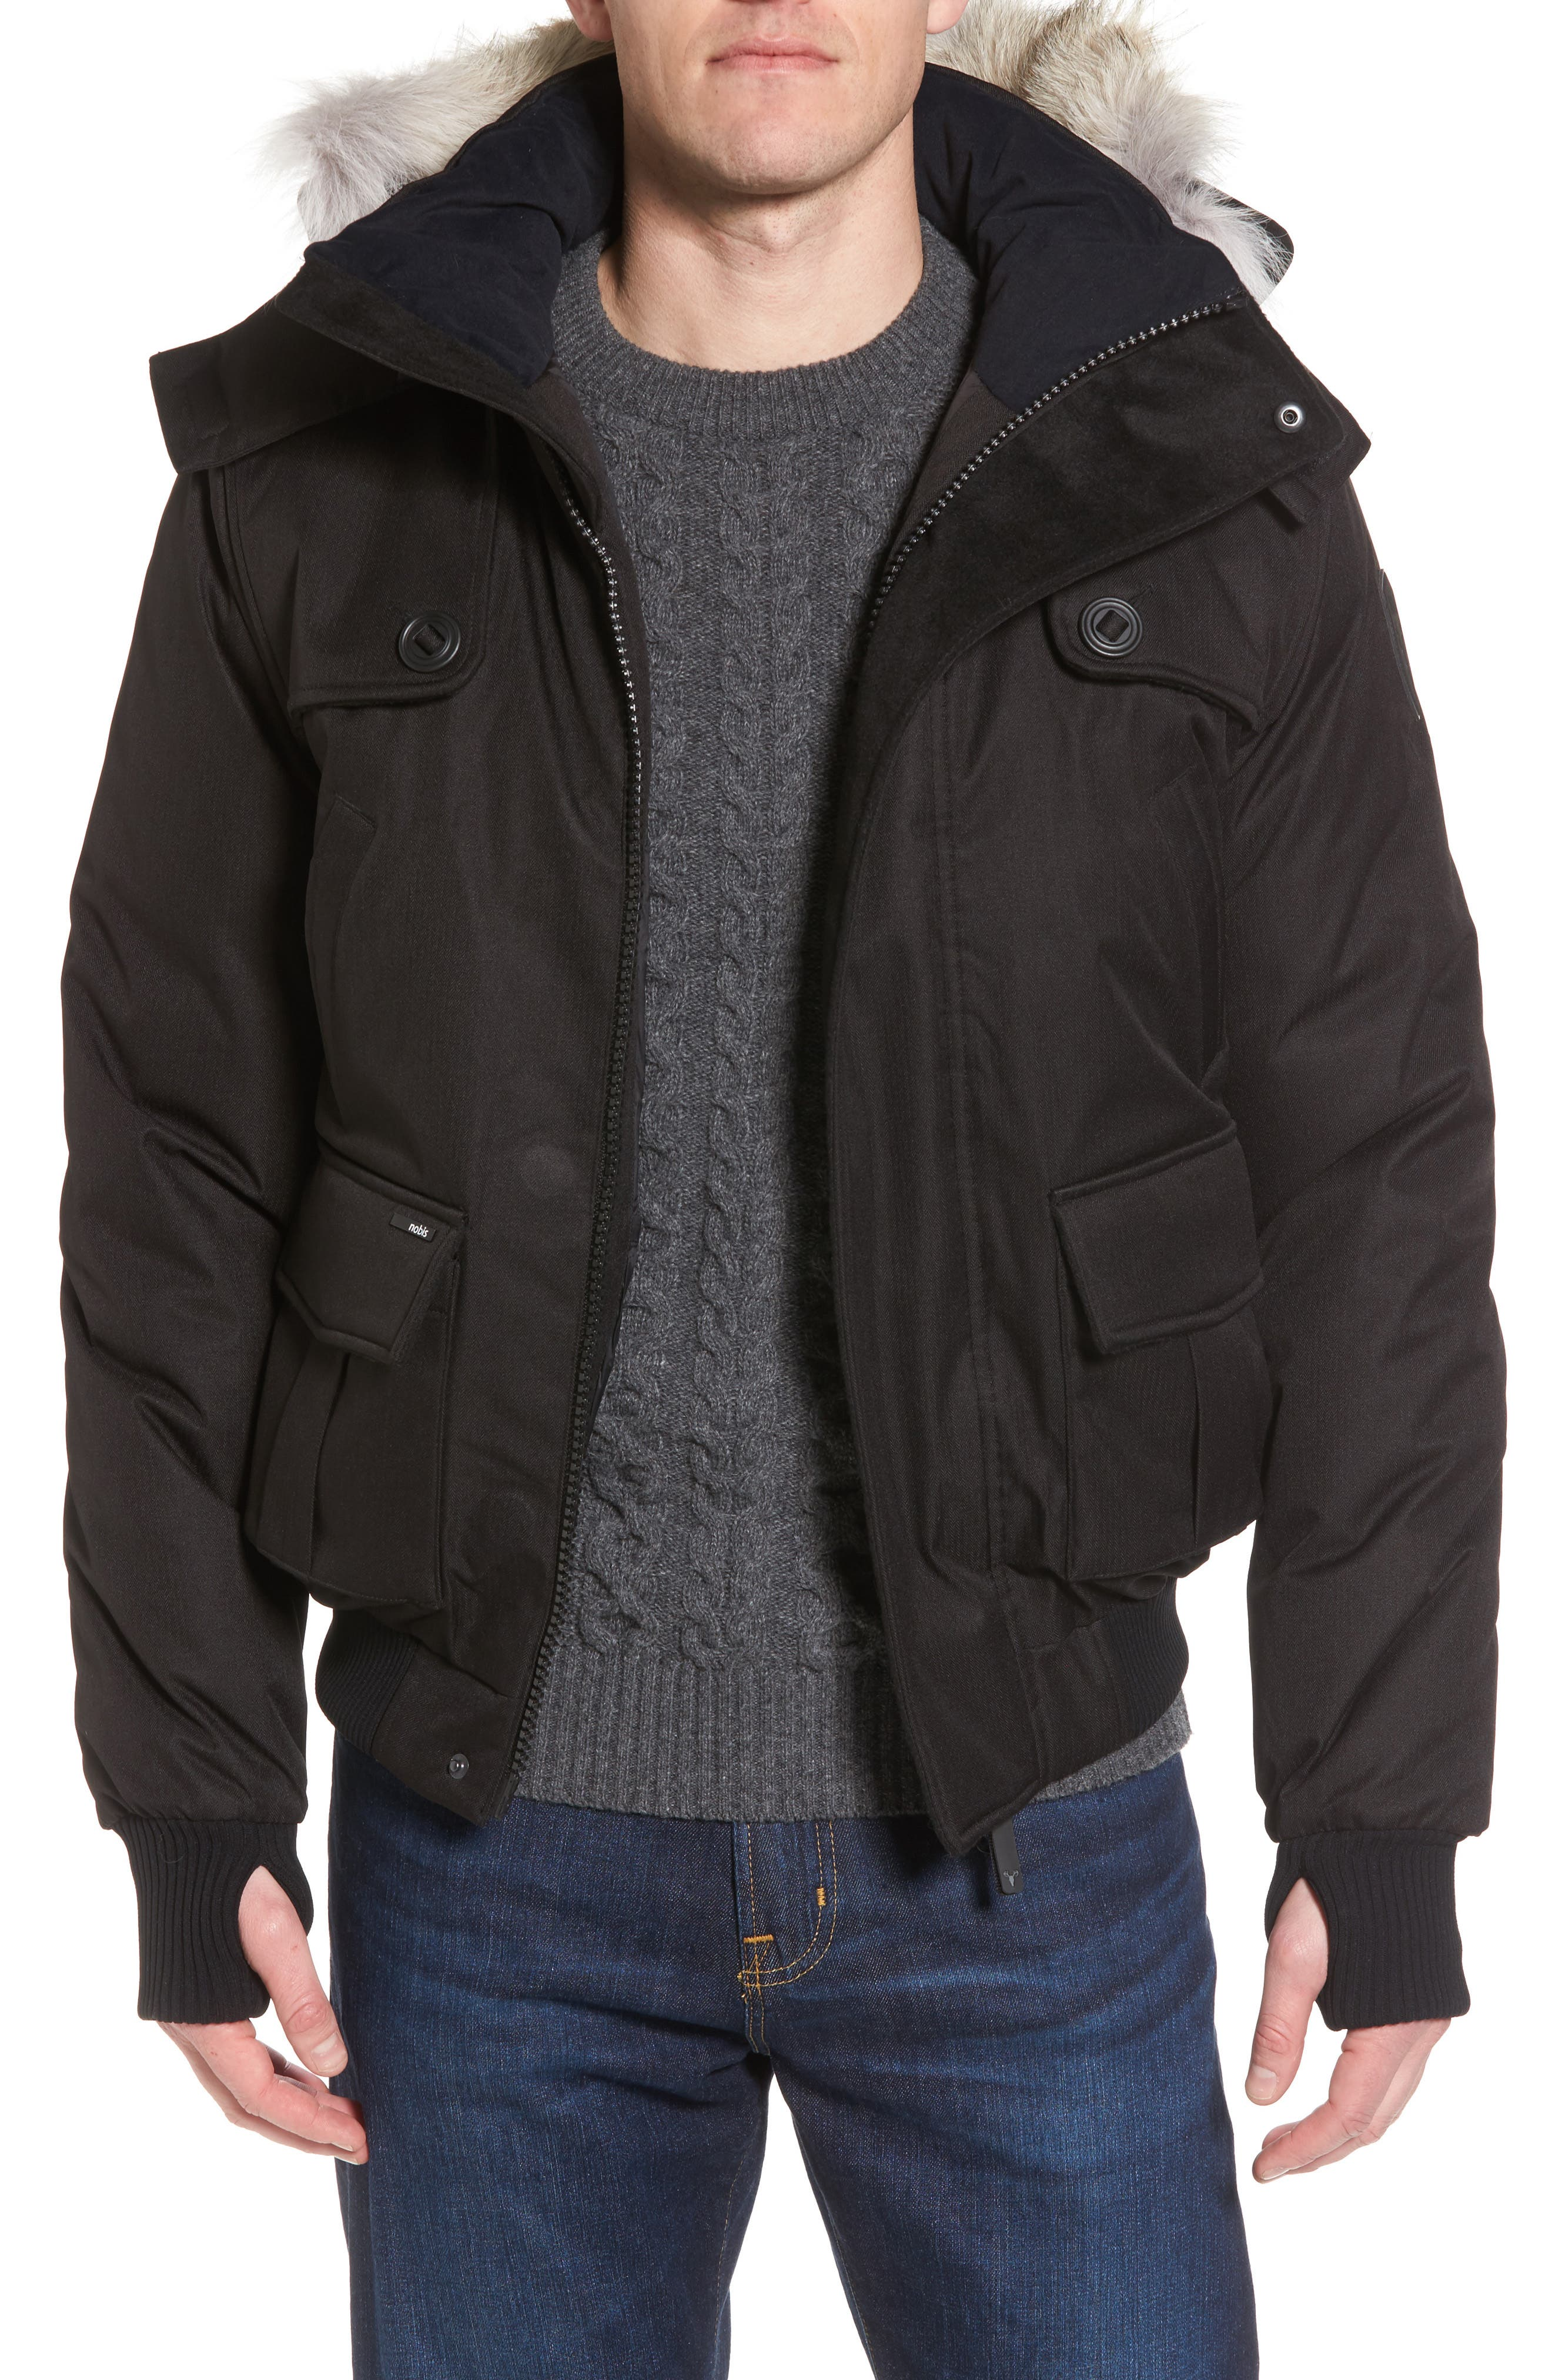 Windproof & Waterproof 650-Fill Power Down Bomber Jacket with Genuine Coyote Fur Trim, Main, color, BLACK